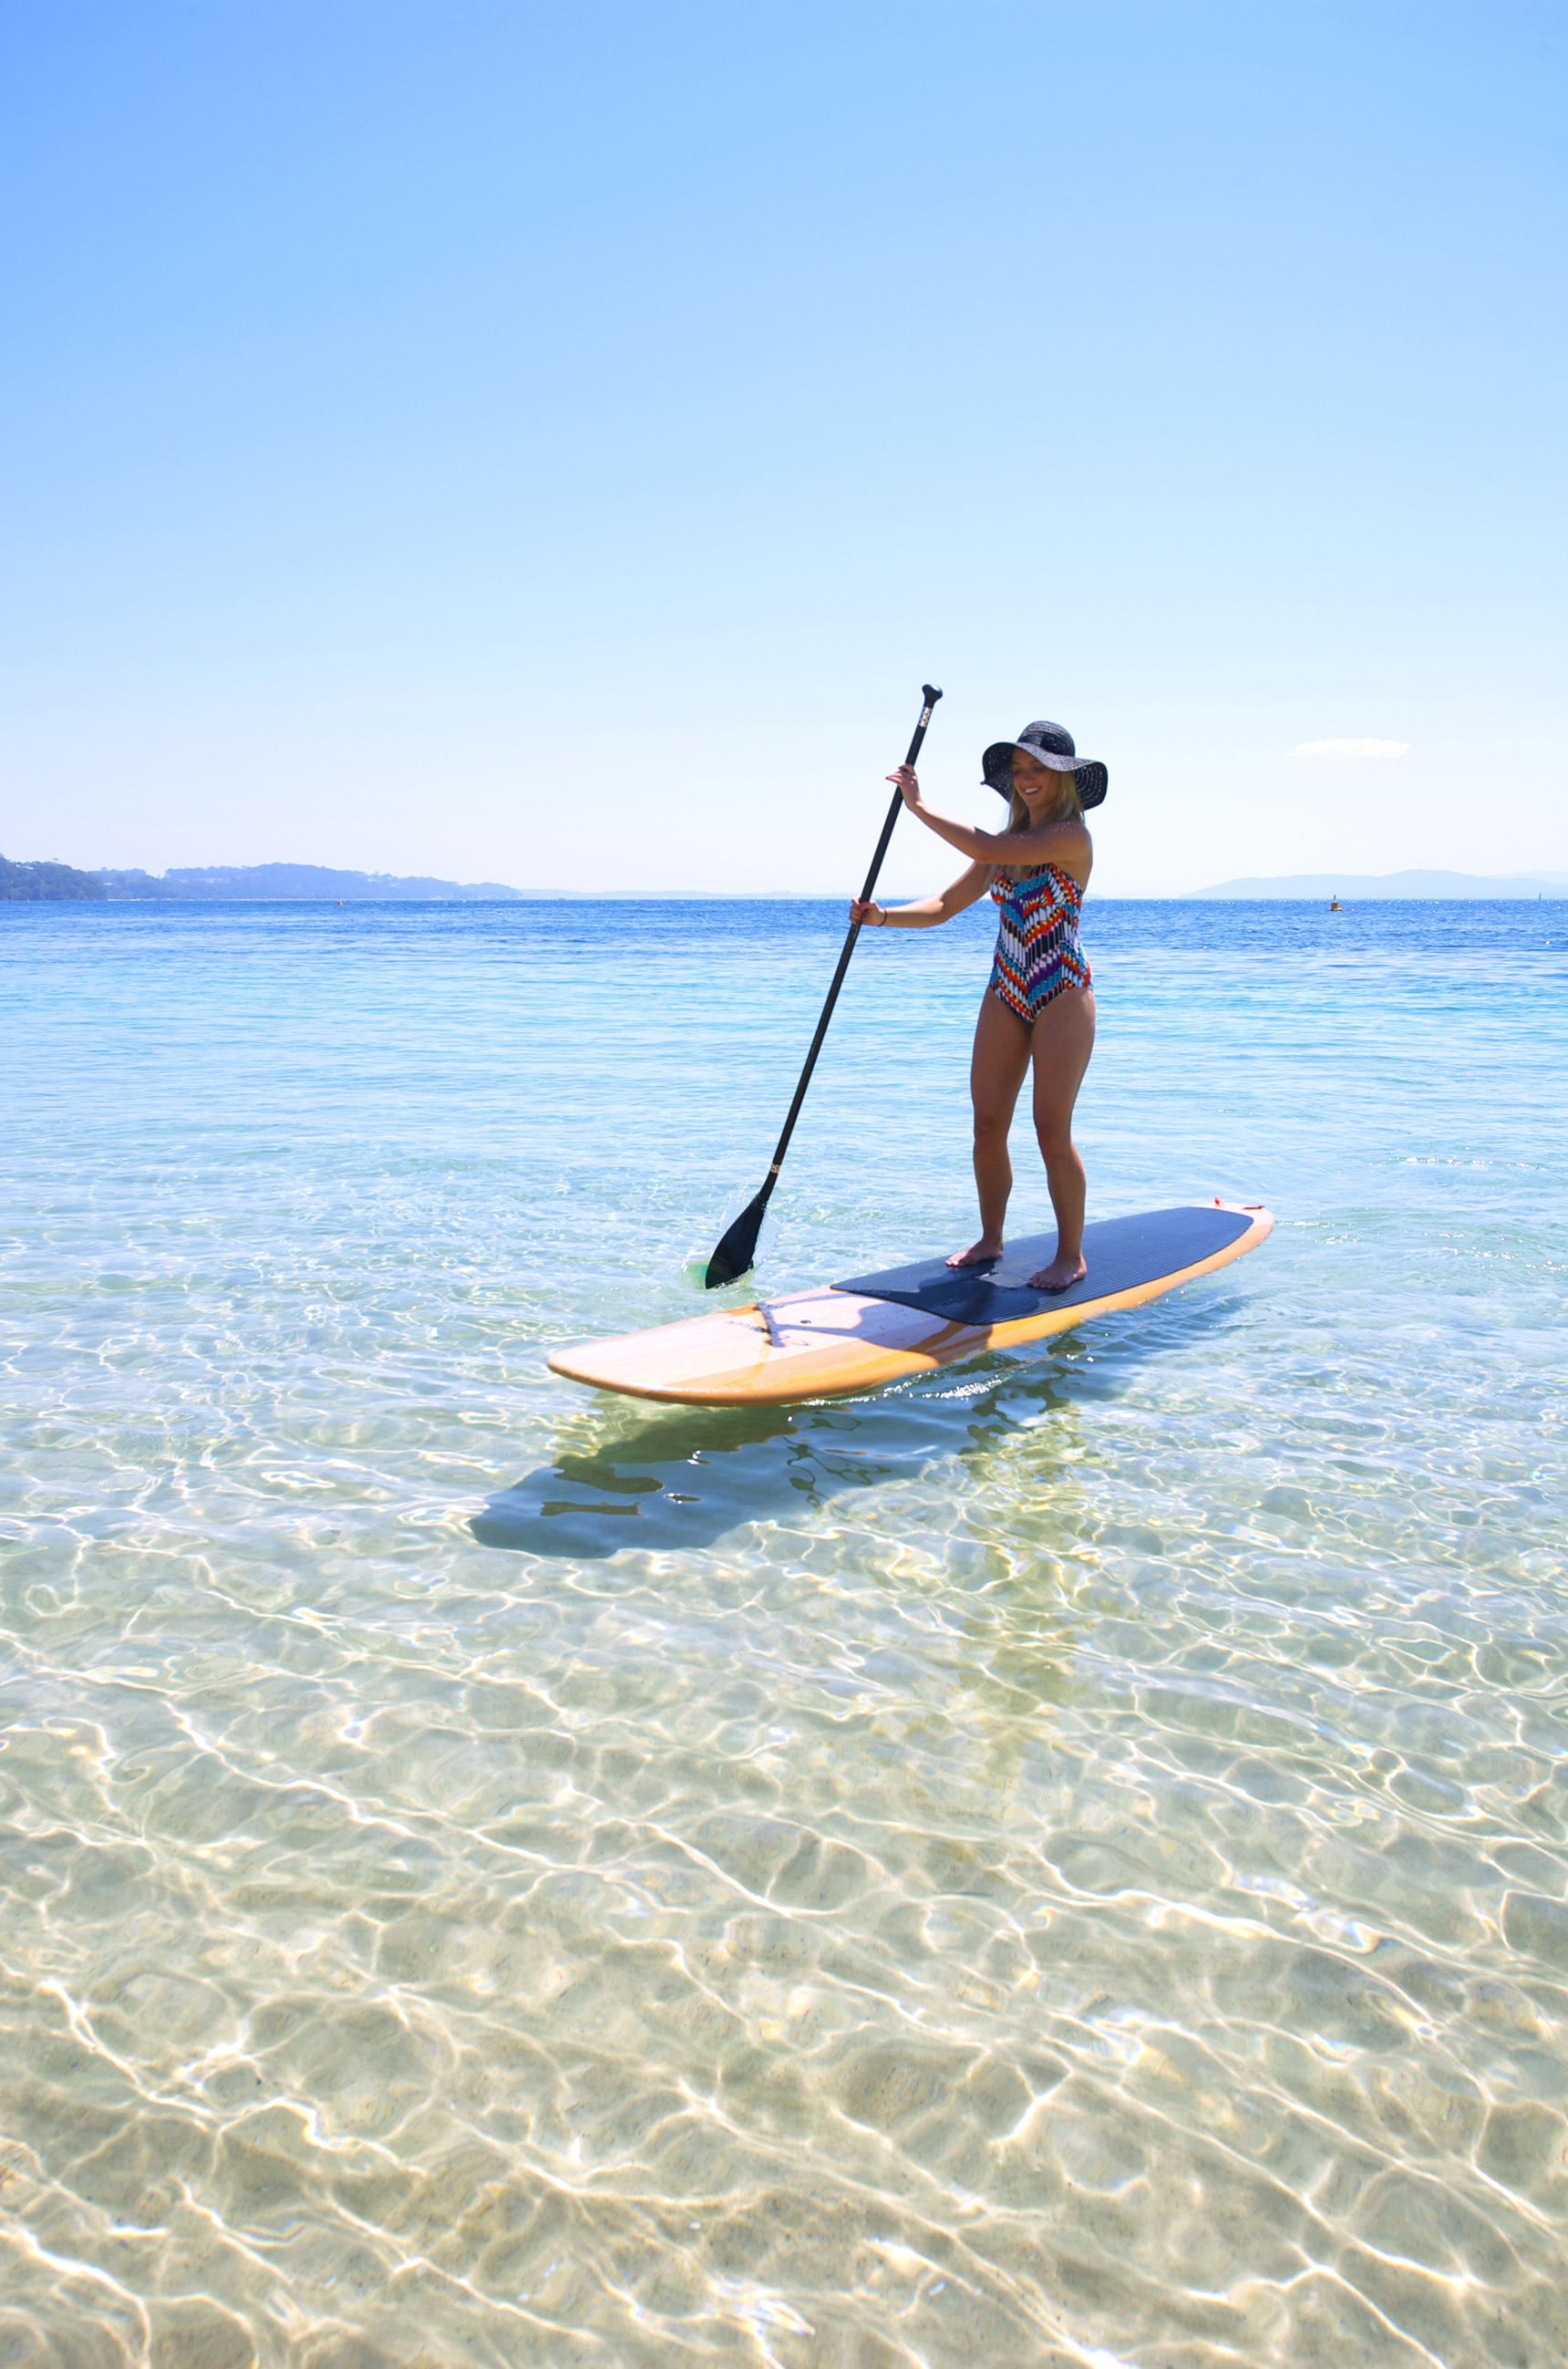 Nelson Bay is perfect for Stand Up Paddleboarding